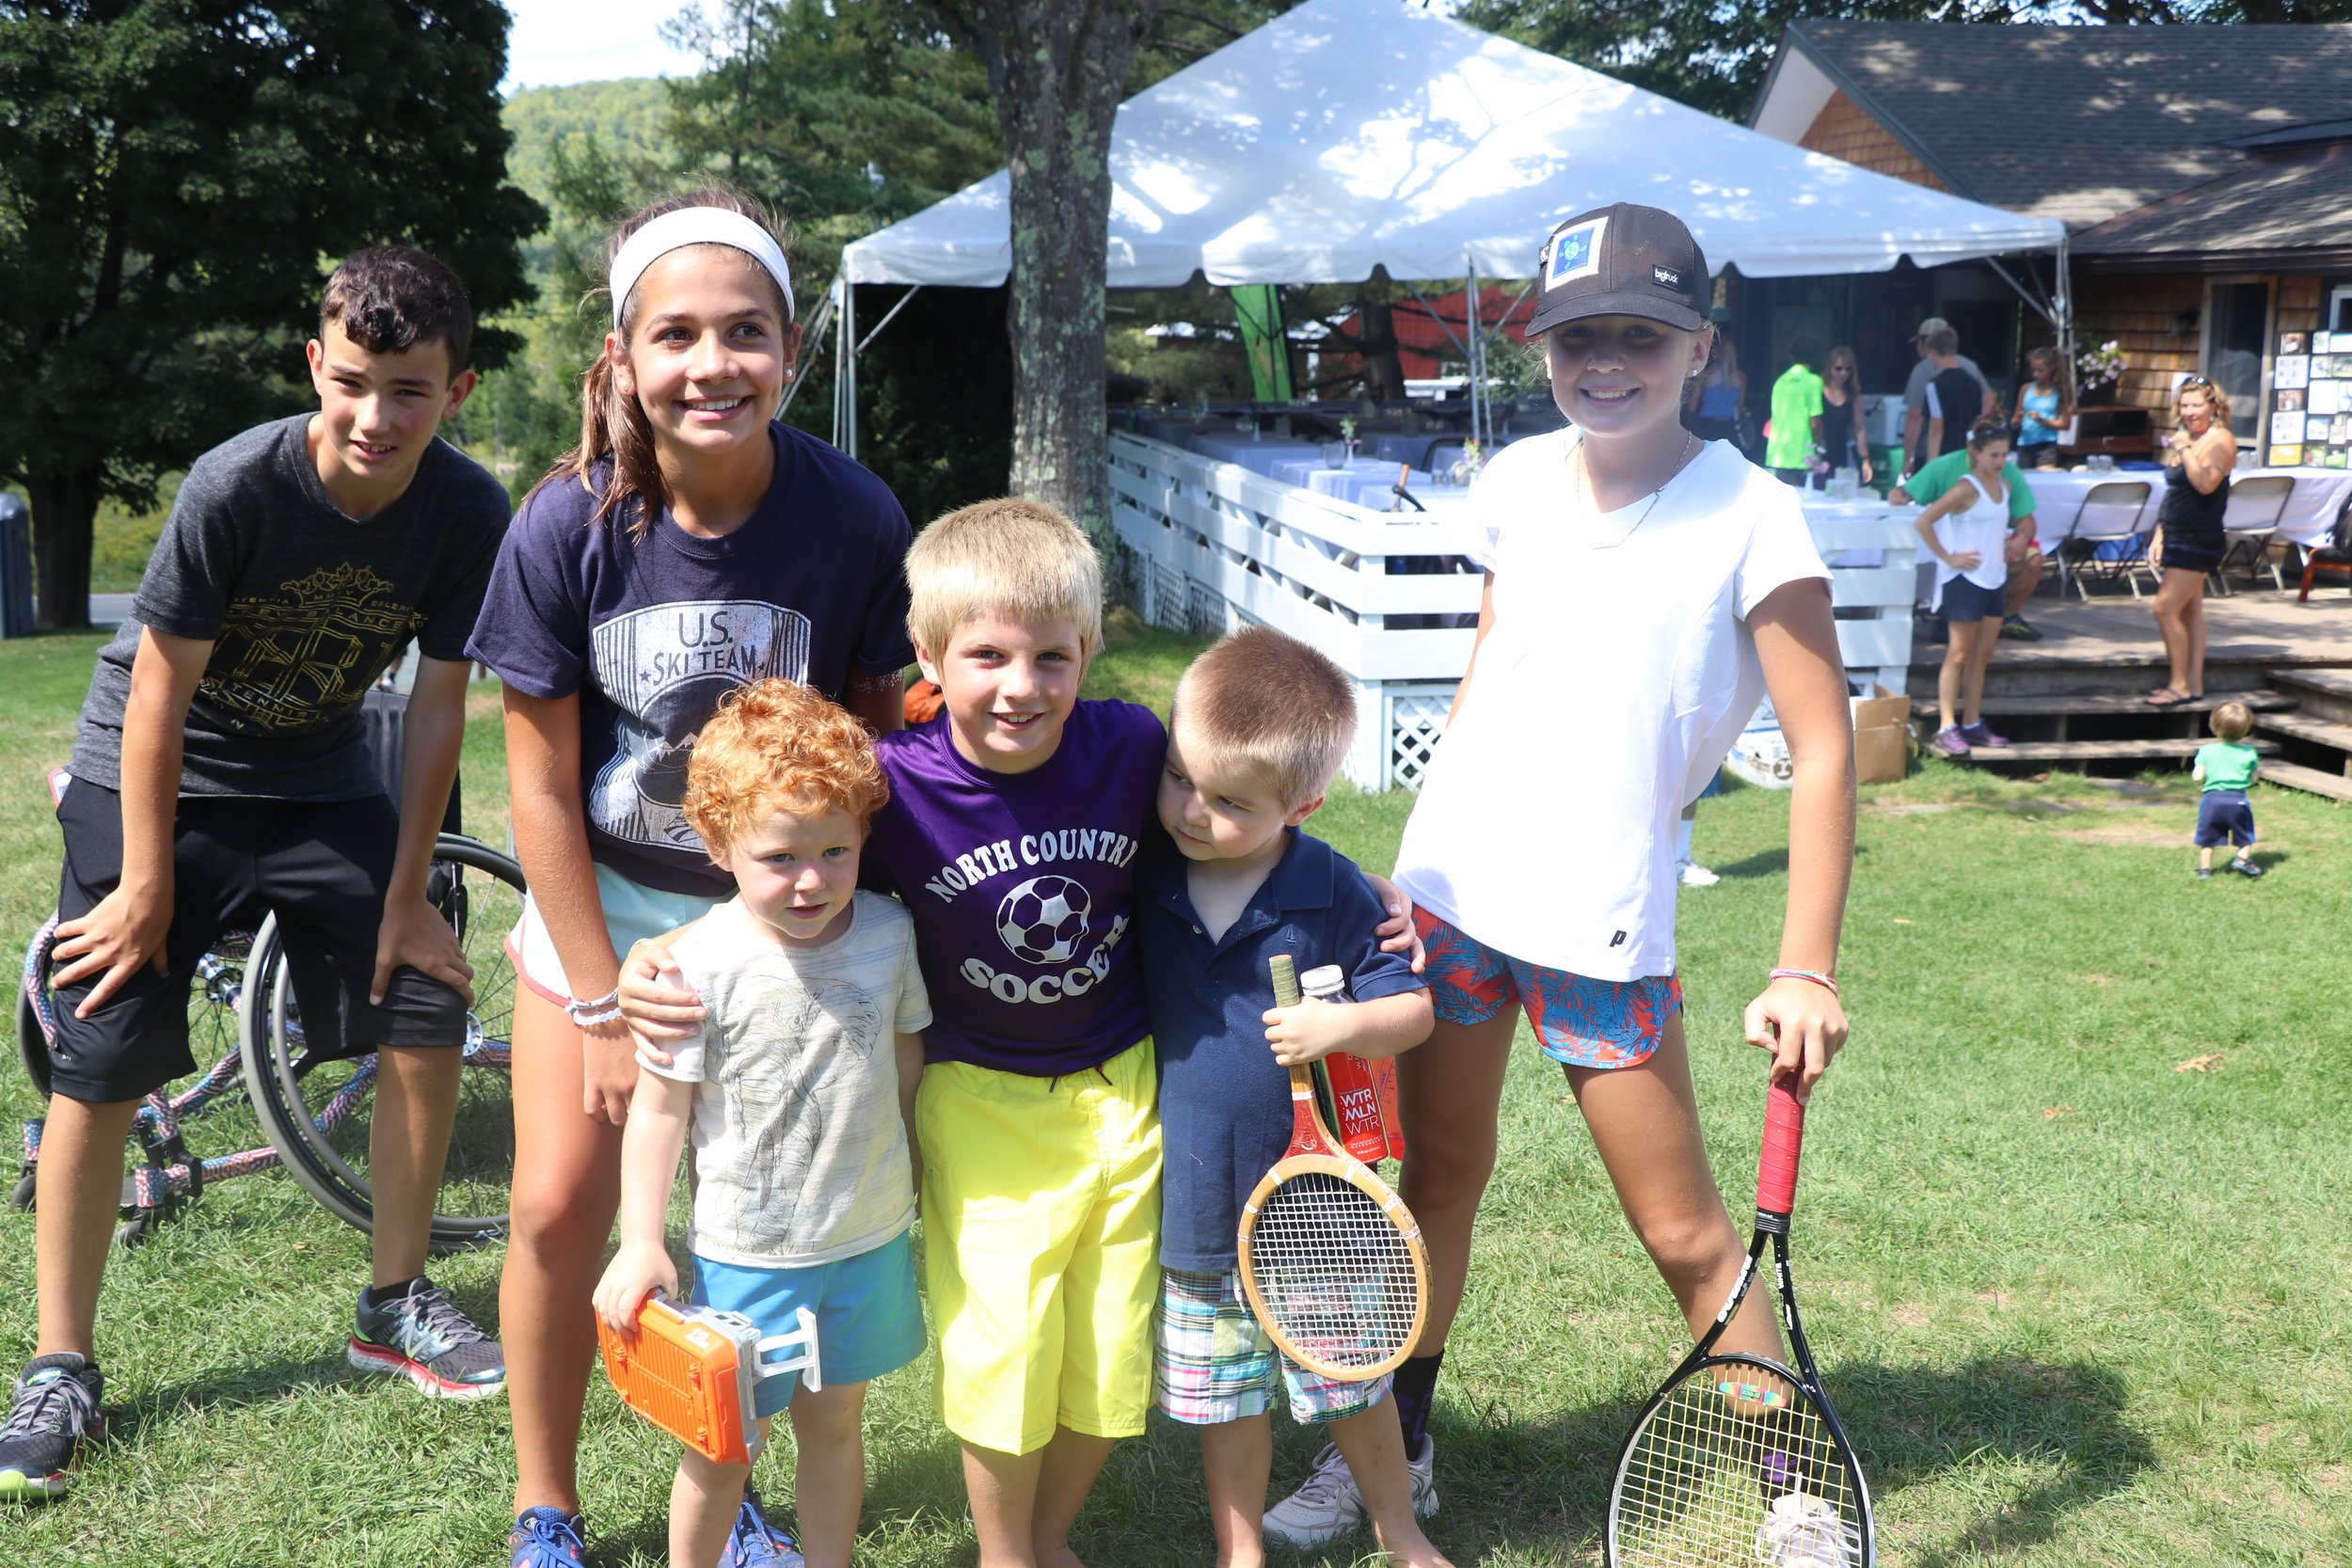 Dinner party charity event - Join us for some amazing food by Chef Joe and great company at Tamarack Tennis Camp. There will be live music and silent auction all for the benefit of our cause. This is a family friendly event!